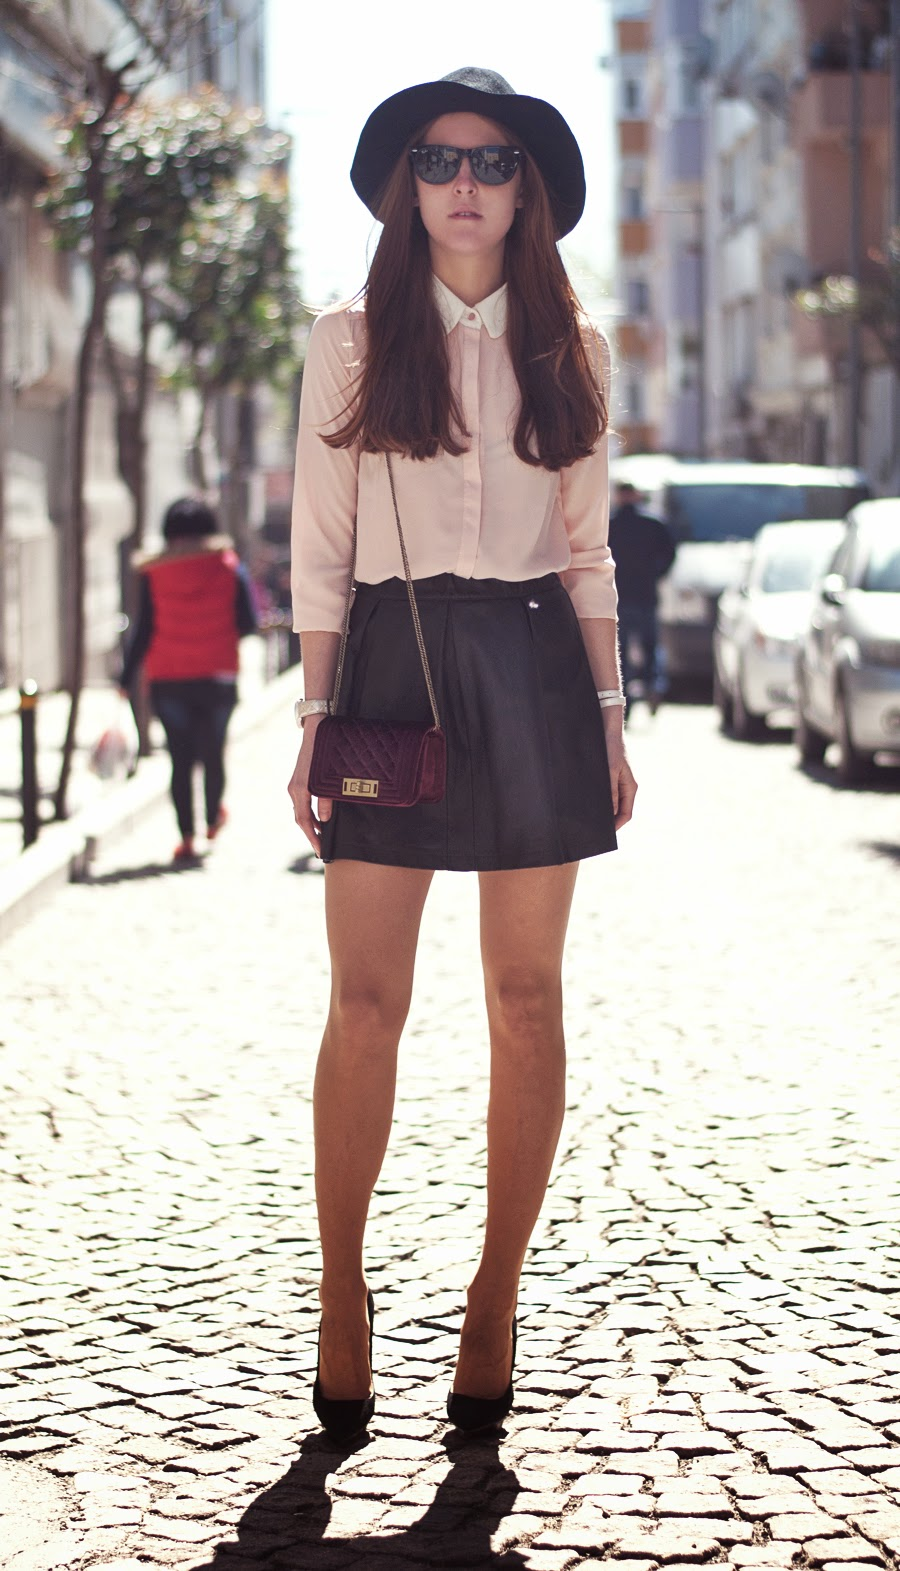 istanbul streetstyle, russian fashionblogger , leather skirt outfit , fedora outfit , mango heels , pink blouse outfit